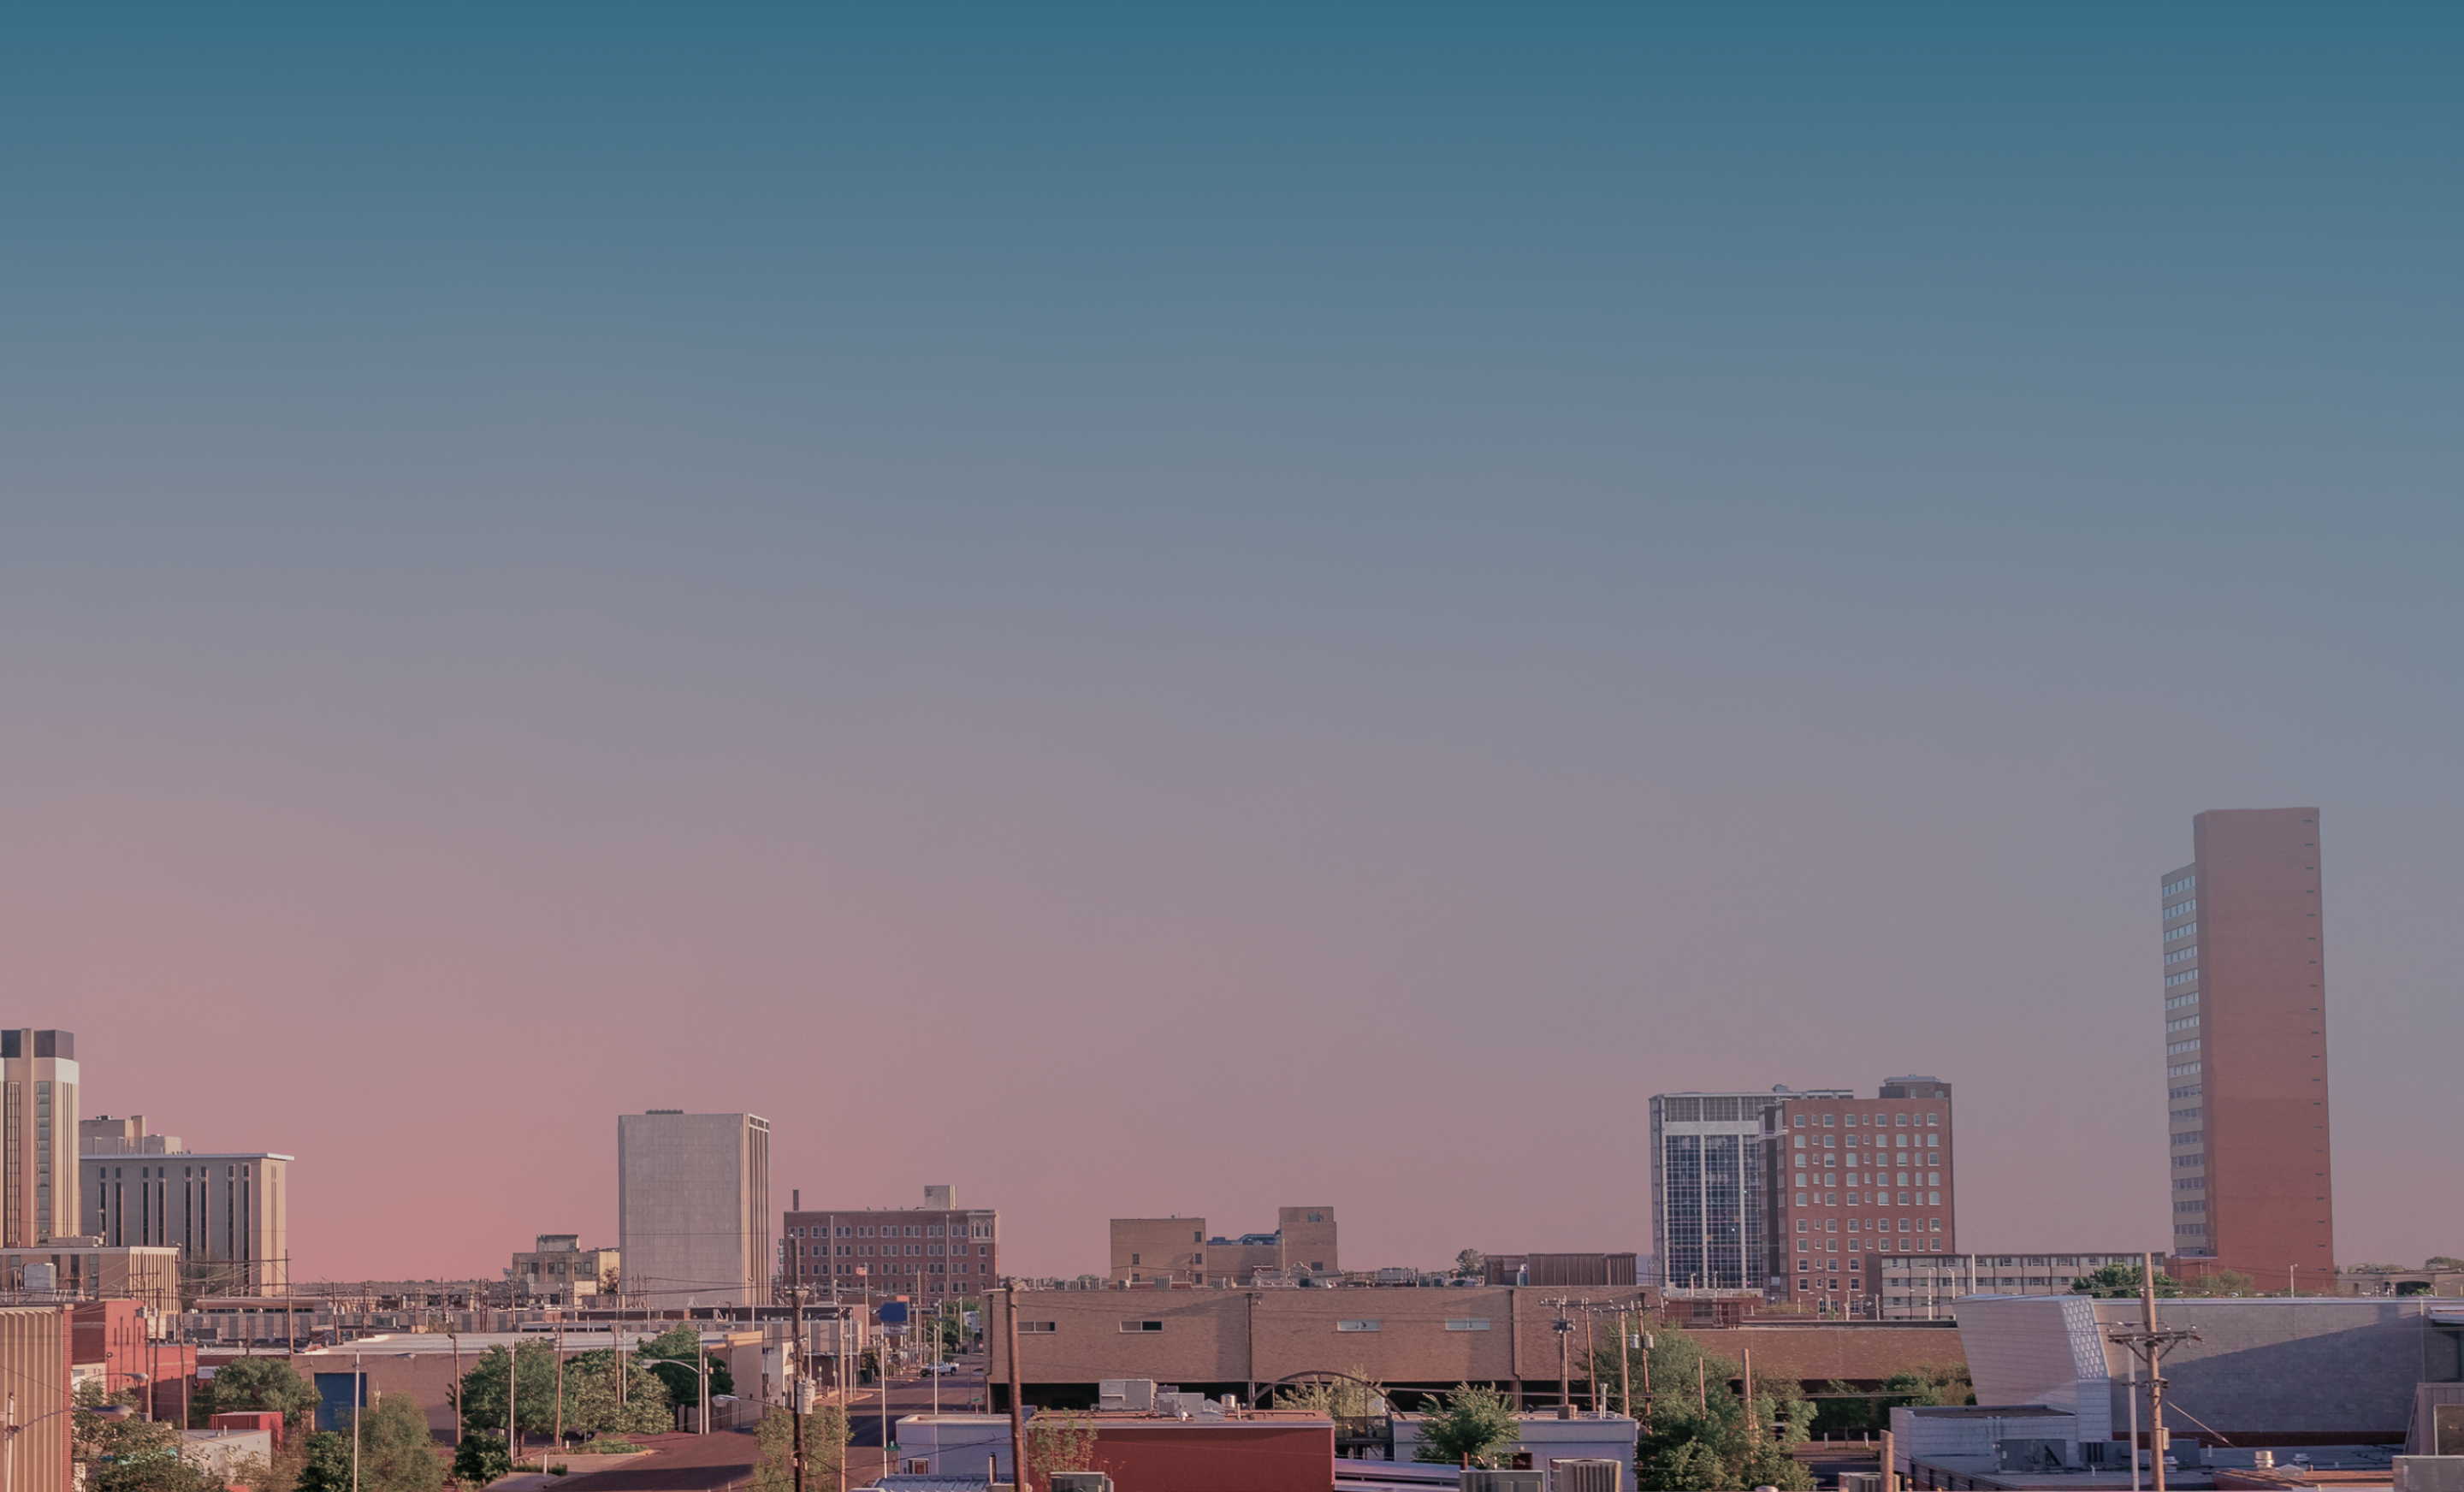 Dowtown Lubbock The place to be